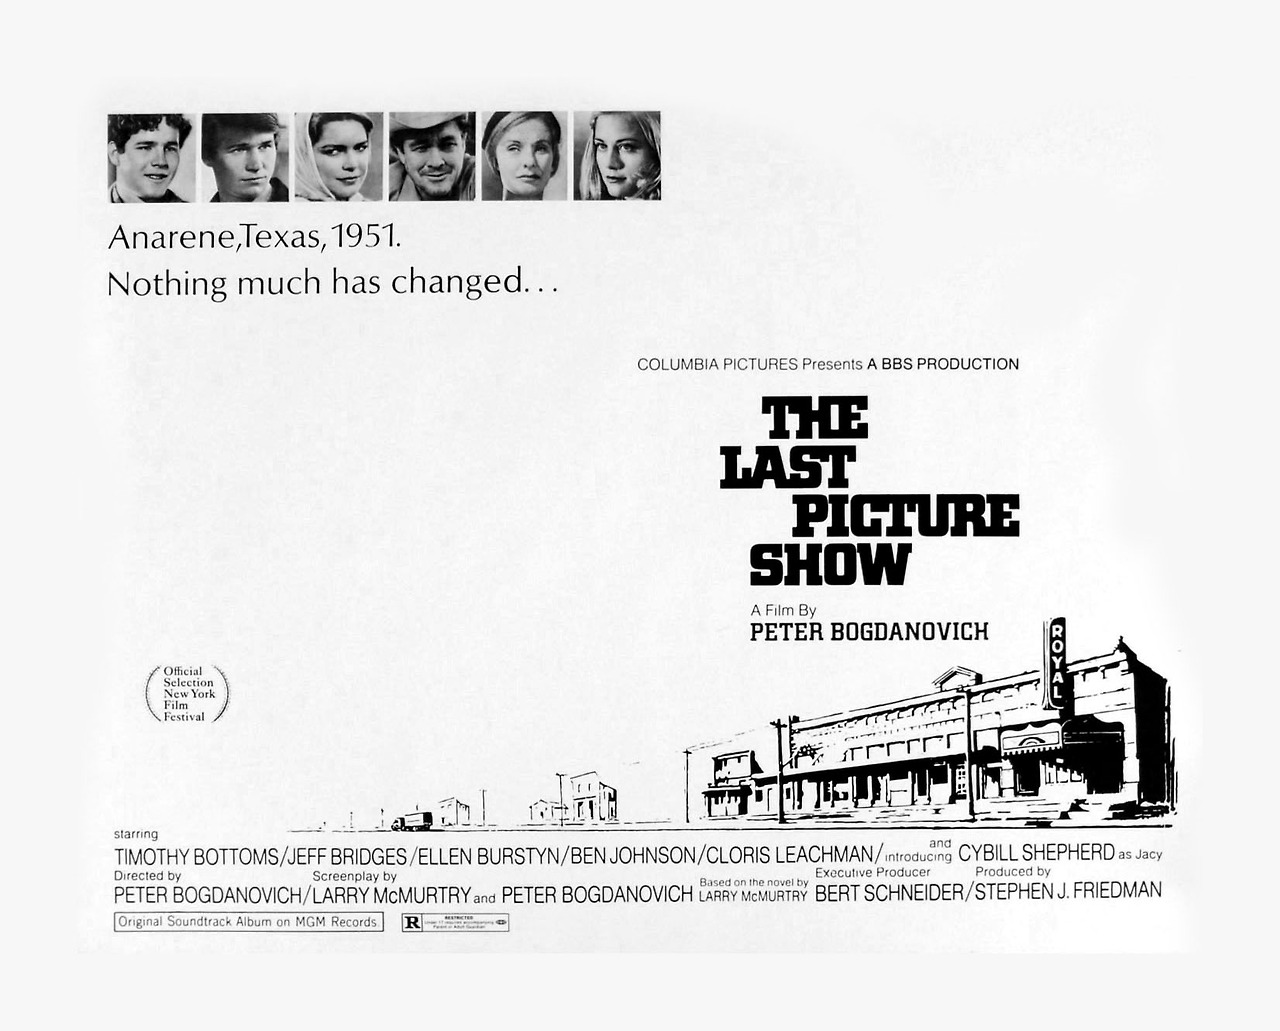 LastPictureShowPosterHorizontal